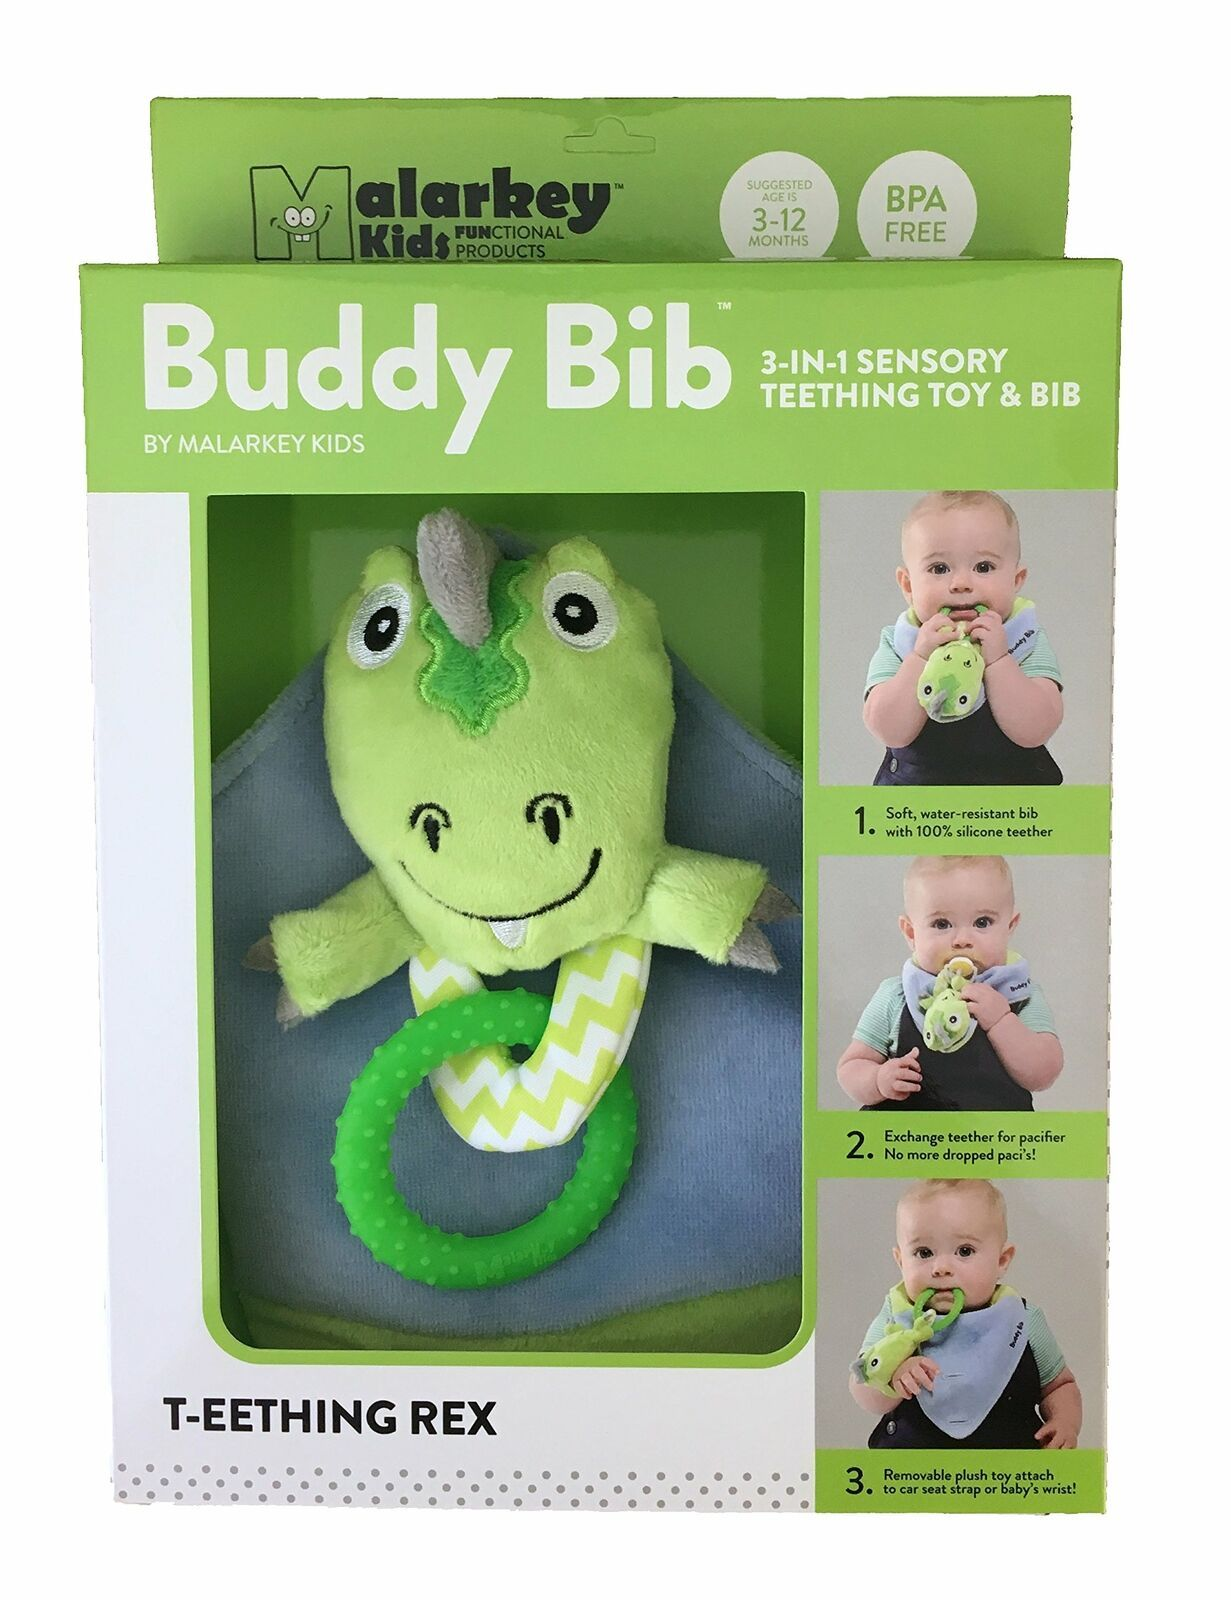 Munch Mitt the Original Mom Invented Teething Toy and 3 in 1 Buddy Bib- Self-... image 4